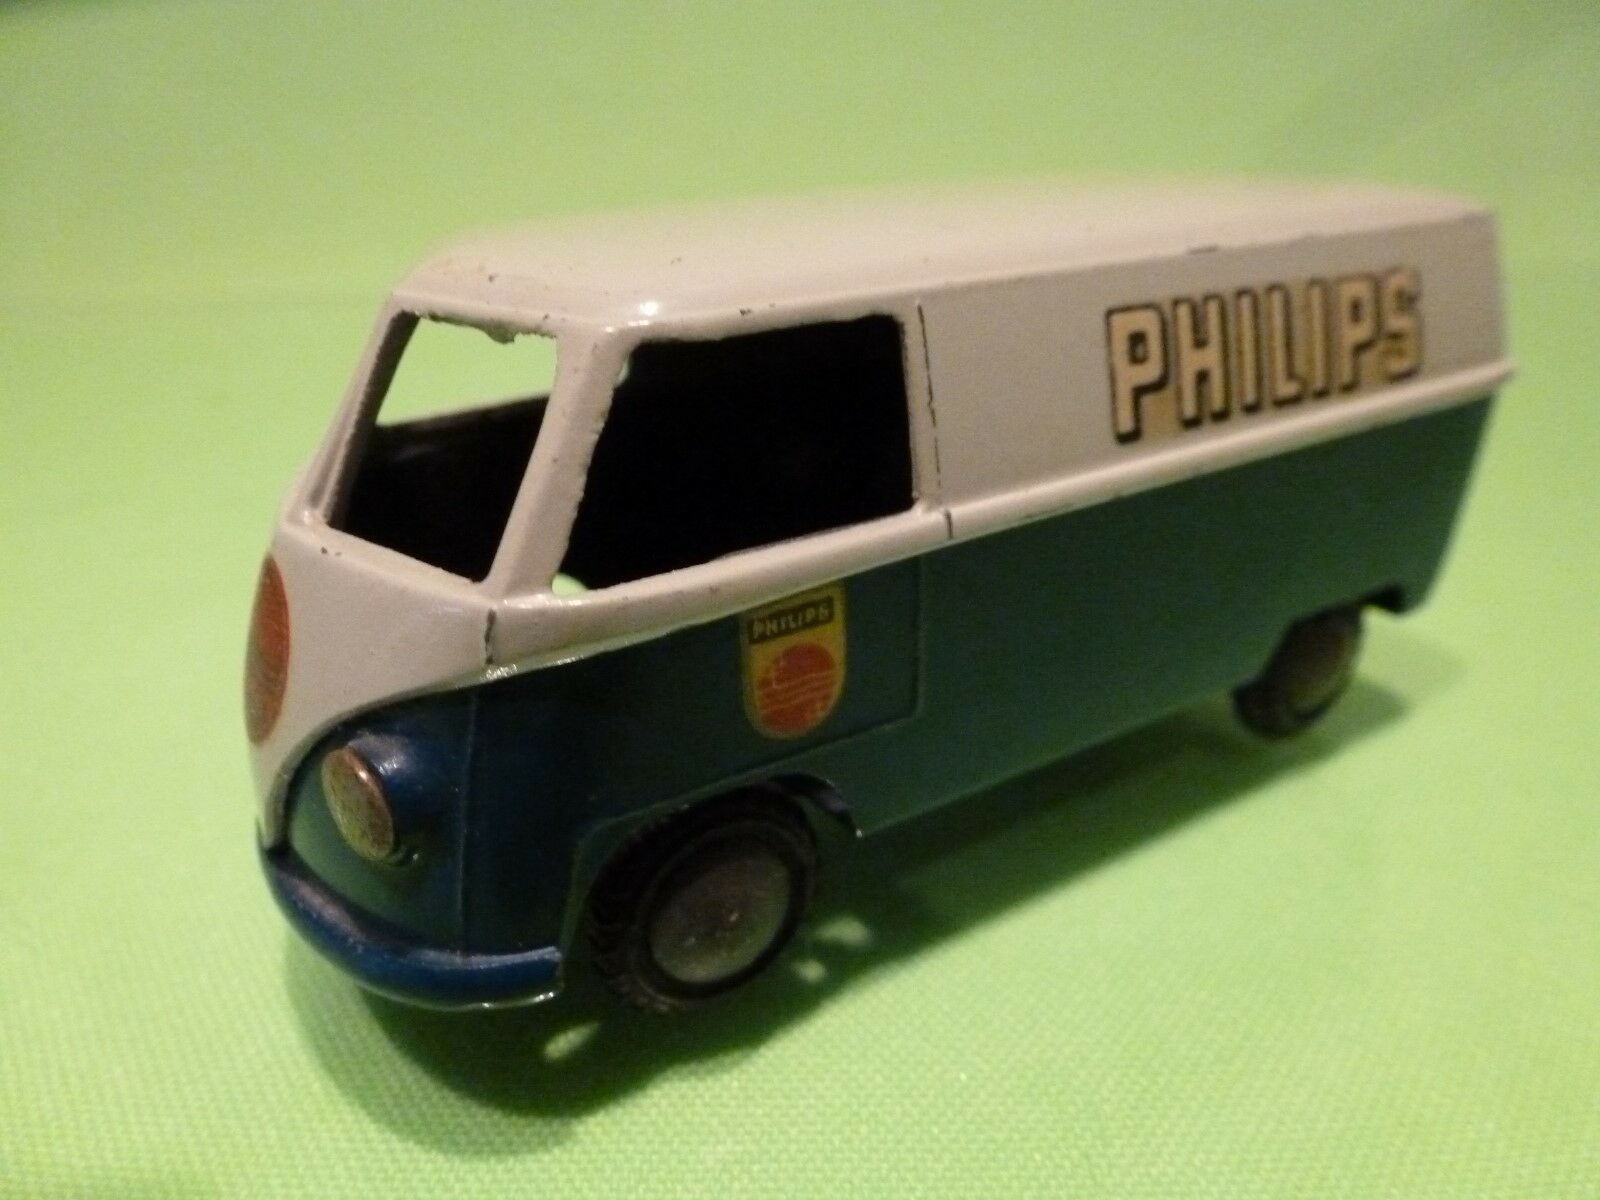 TEKNO DENMARK - 1 43 VOLKSWAGEN T1 BUS  PHILIPS WERBE  - NEAR MINT CONDITION